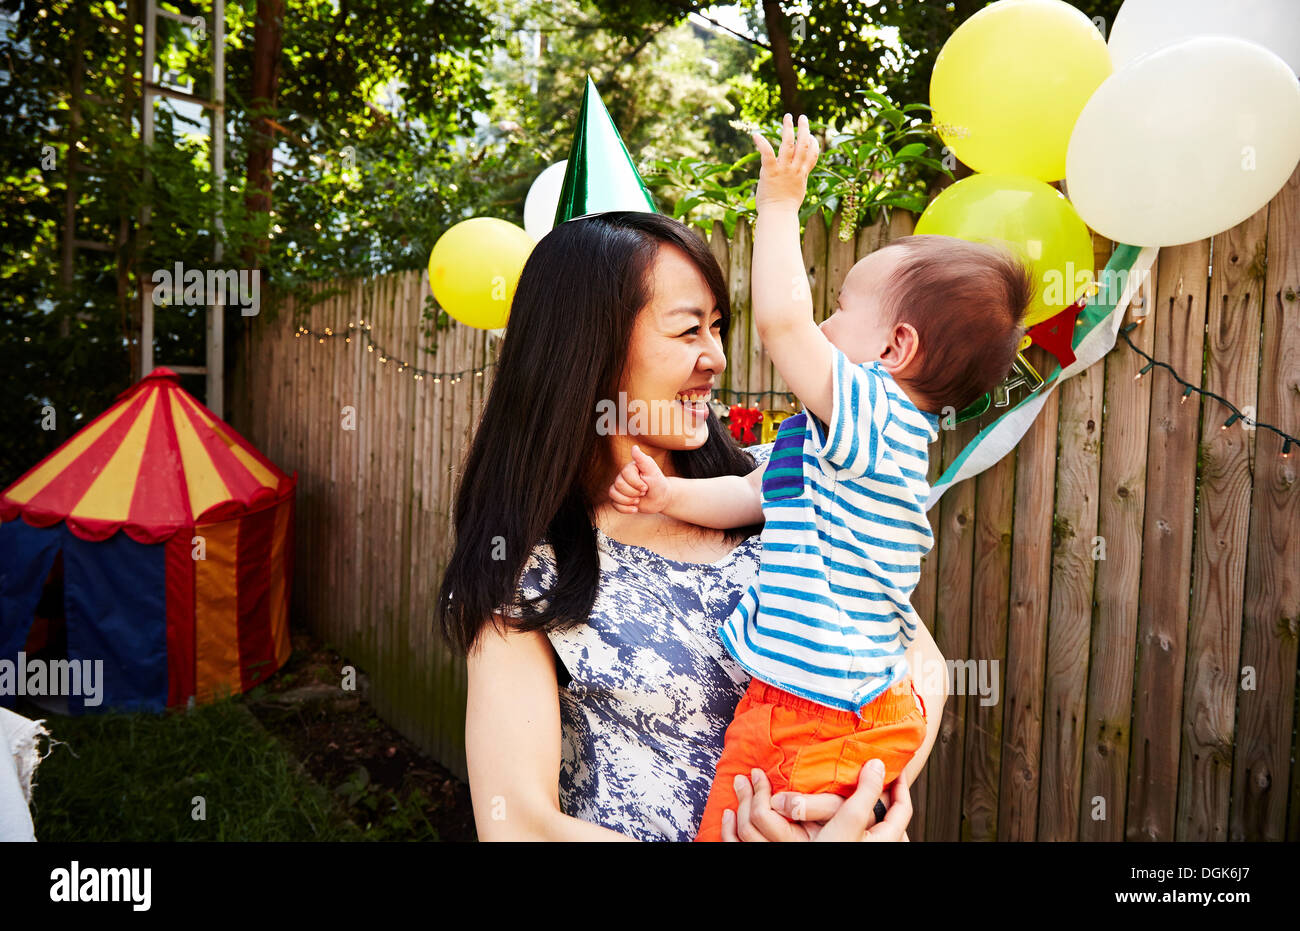 Mother wearing party hat holding baby boy at birthday party - Stock Image